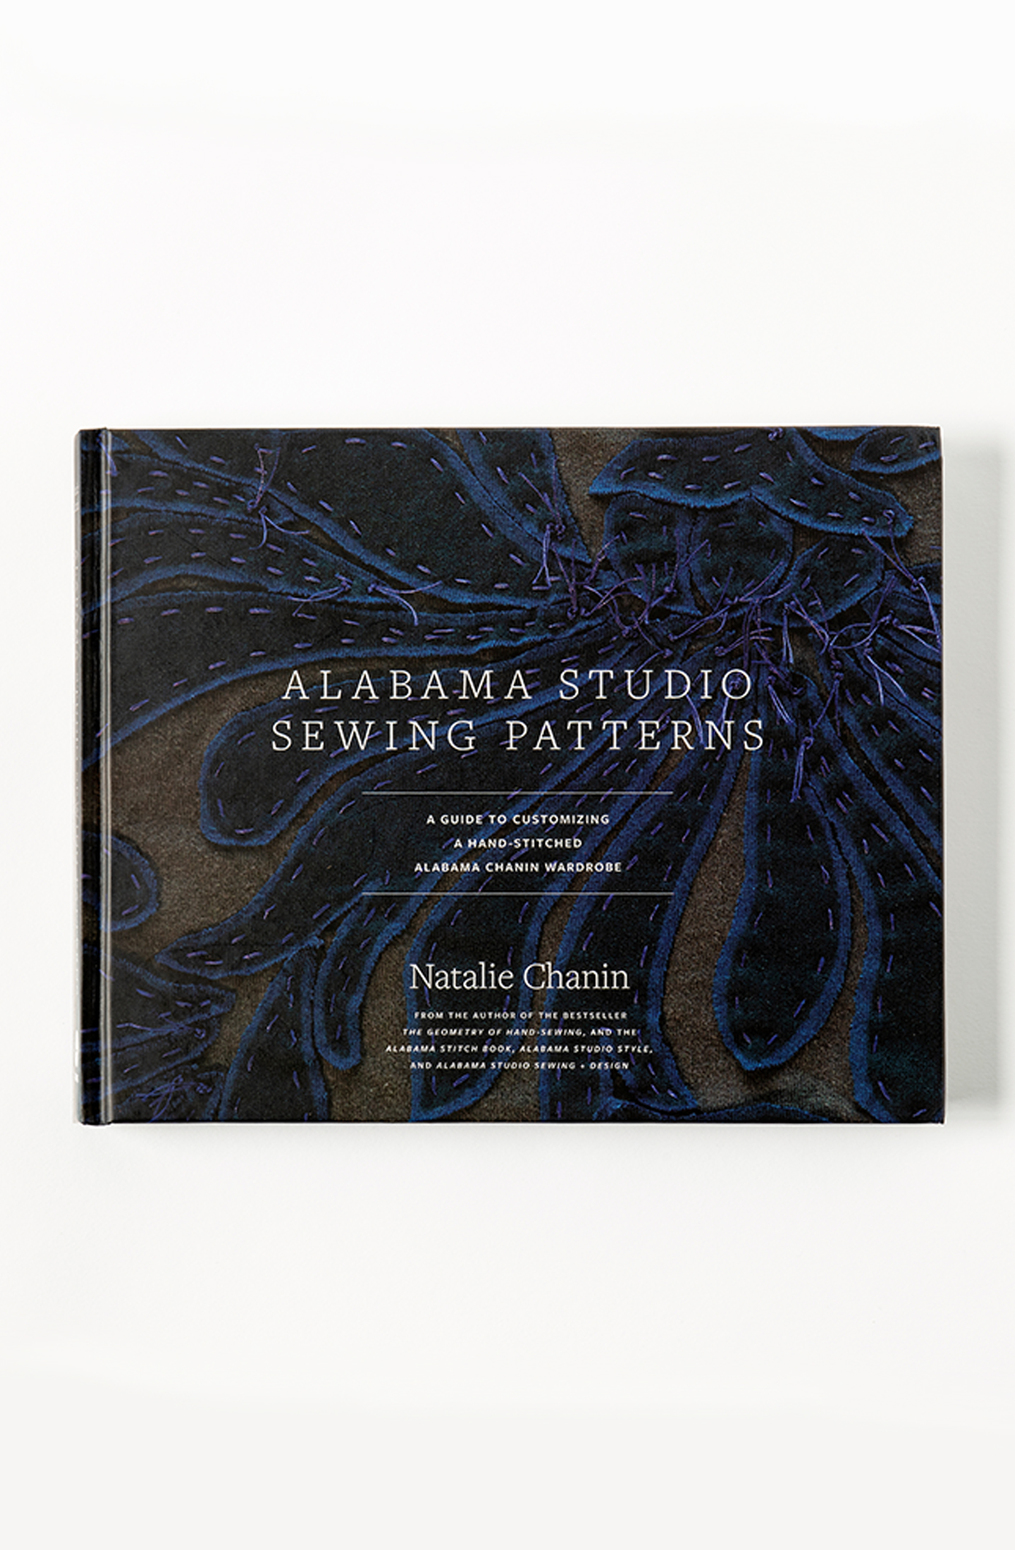 The school of making alabama studio sewing patterns 1